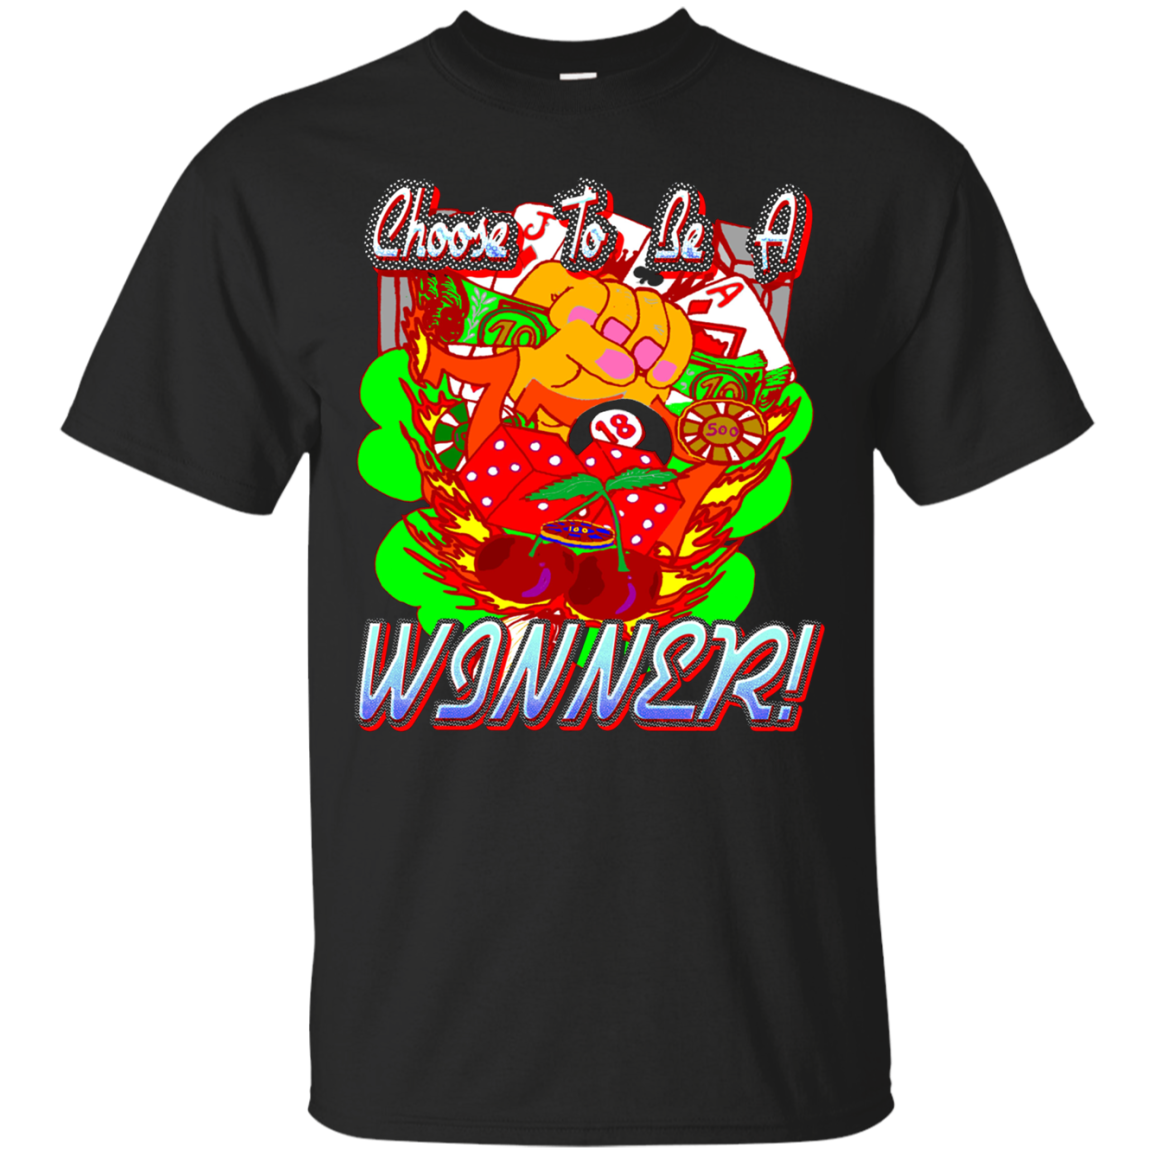 Funny Inspirational Lucky Choose To Be A Winner! T-Shirt